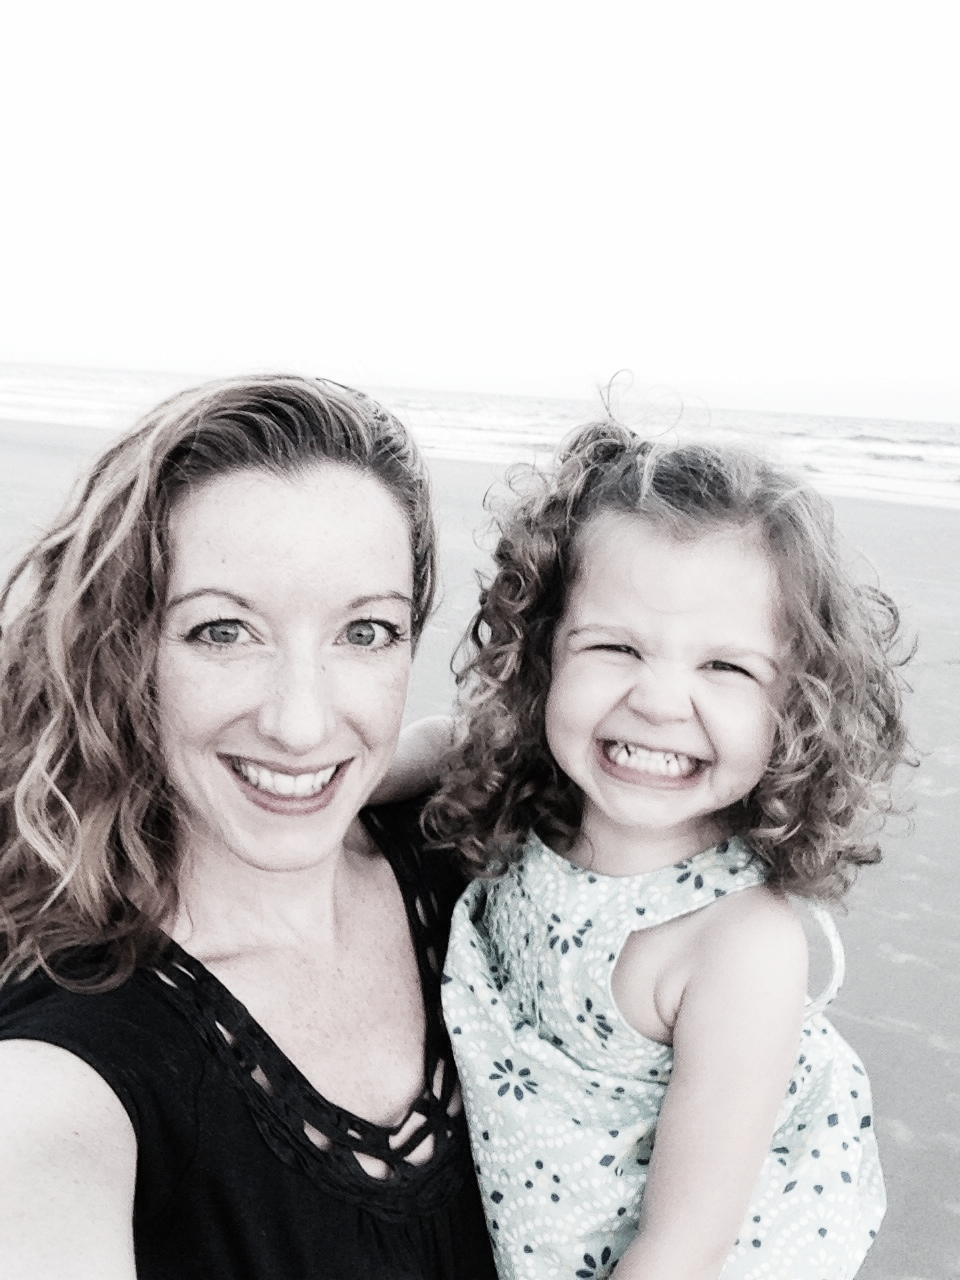 My youngest daughter - beach time!